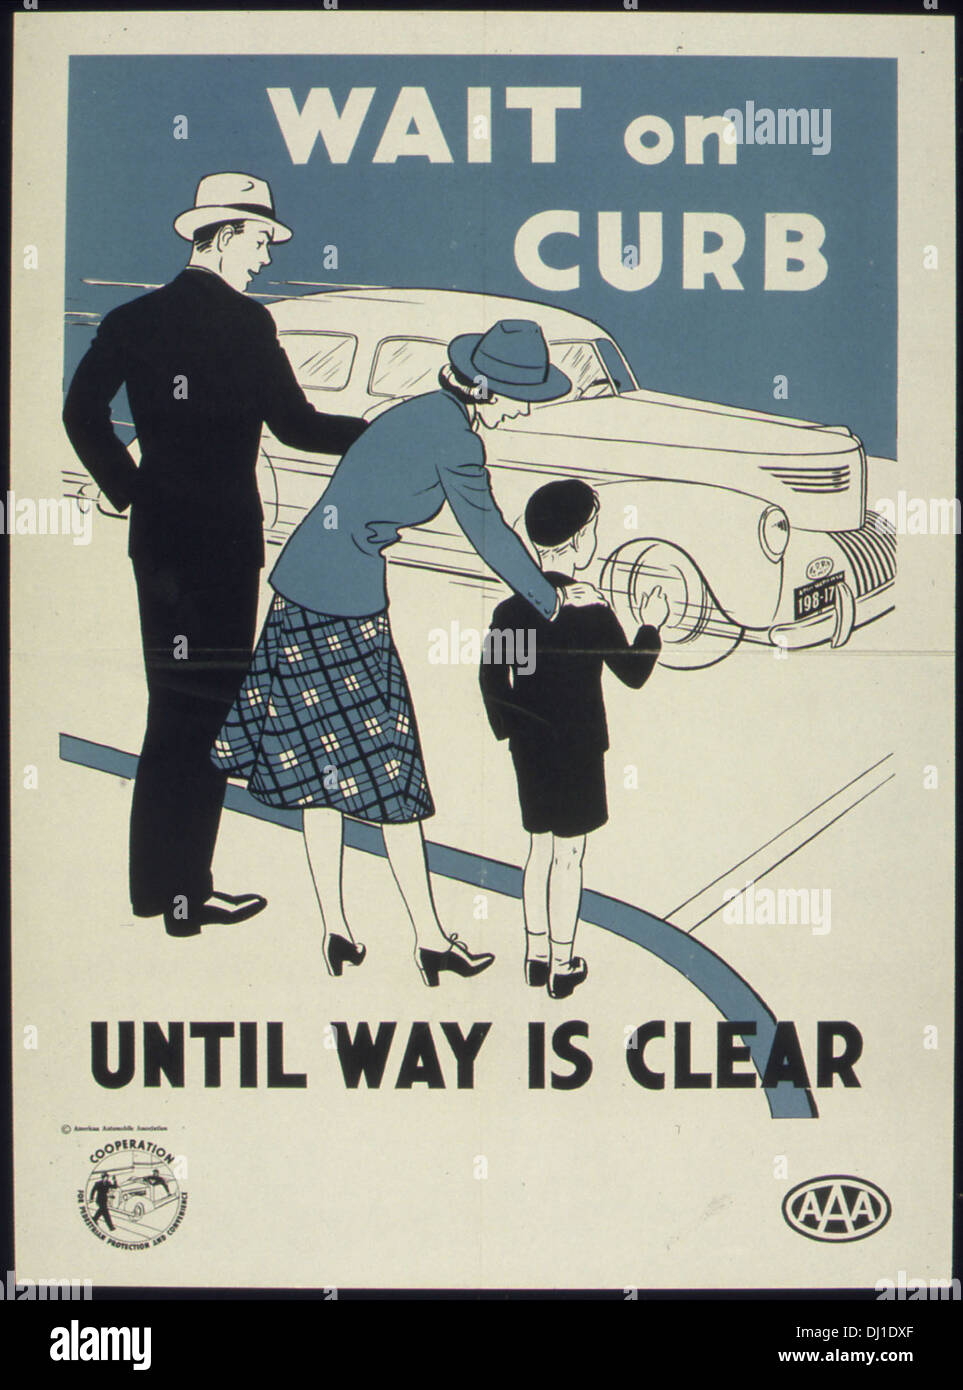 WAIT ON CURB UNTIL WAY IS CLEAR 009 - Stock Image